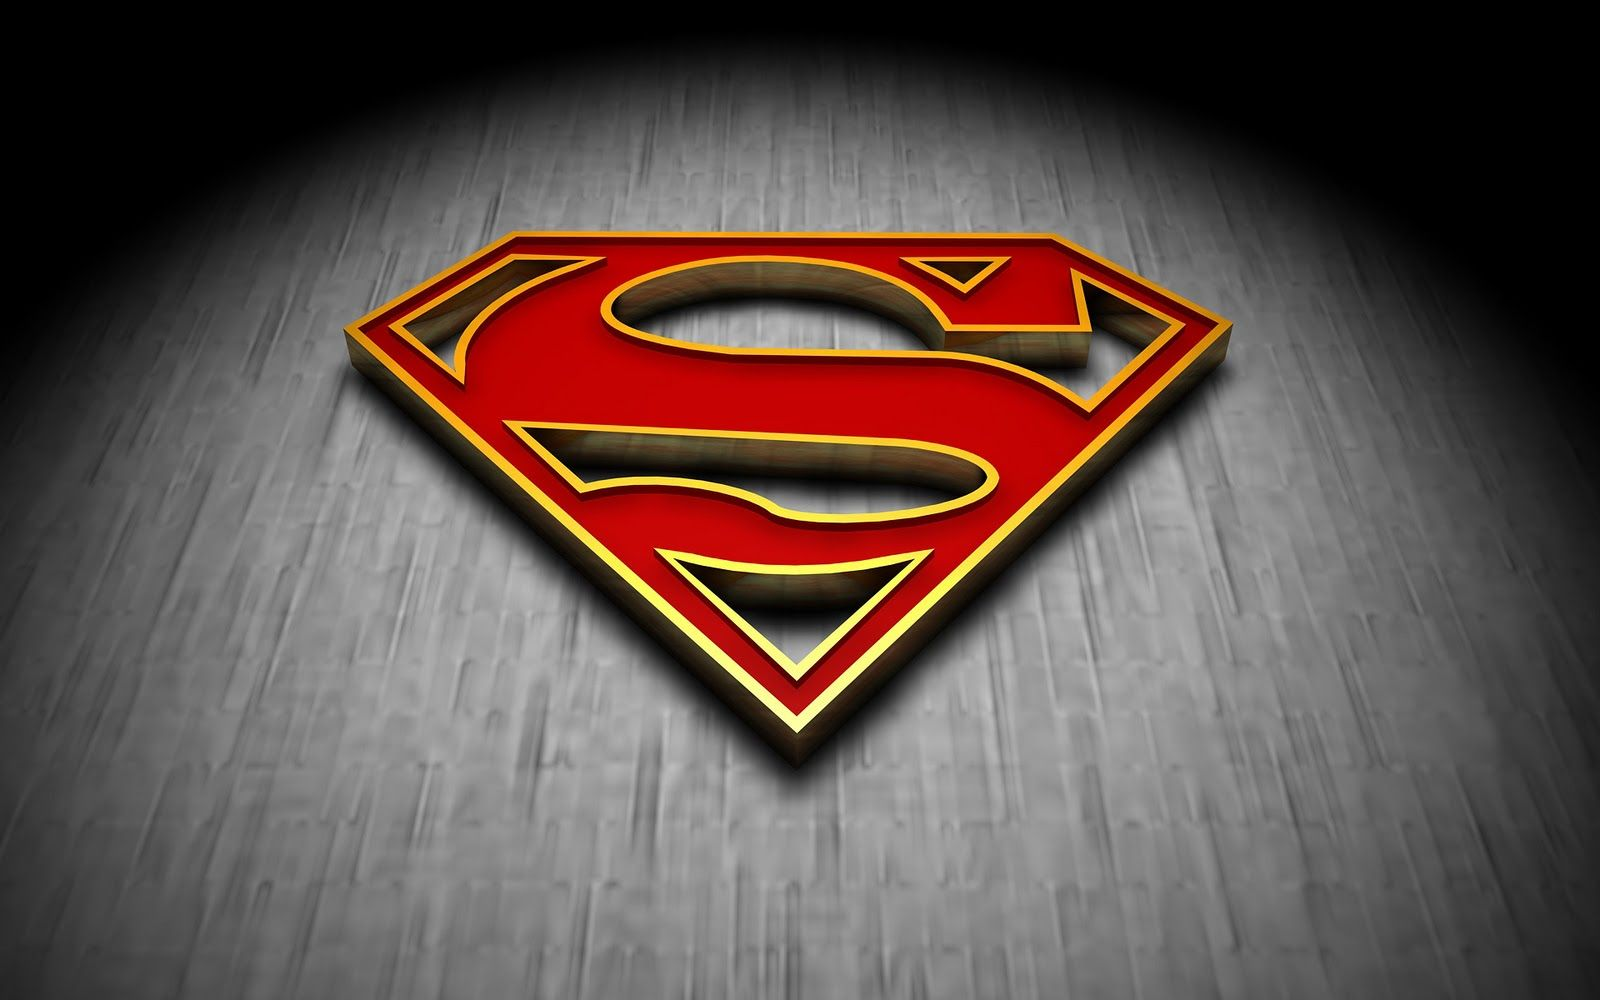 Superman Logo Black And White Wallpaper Cool Hd Superman Logo Batman Vs Superman 3d Logo